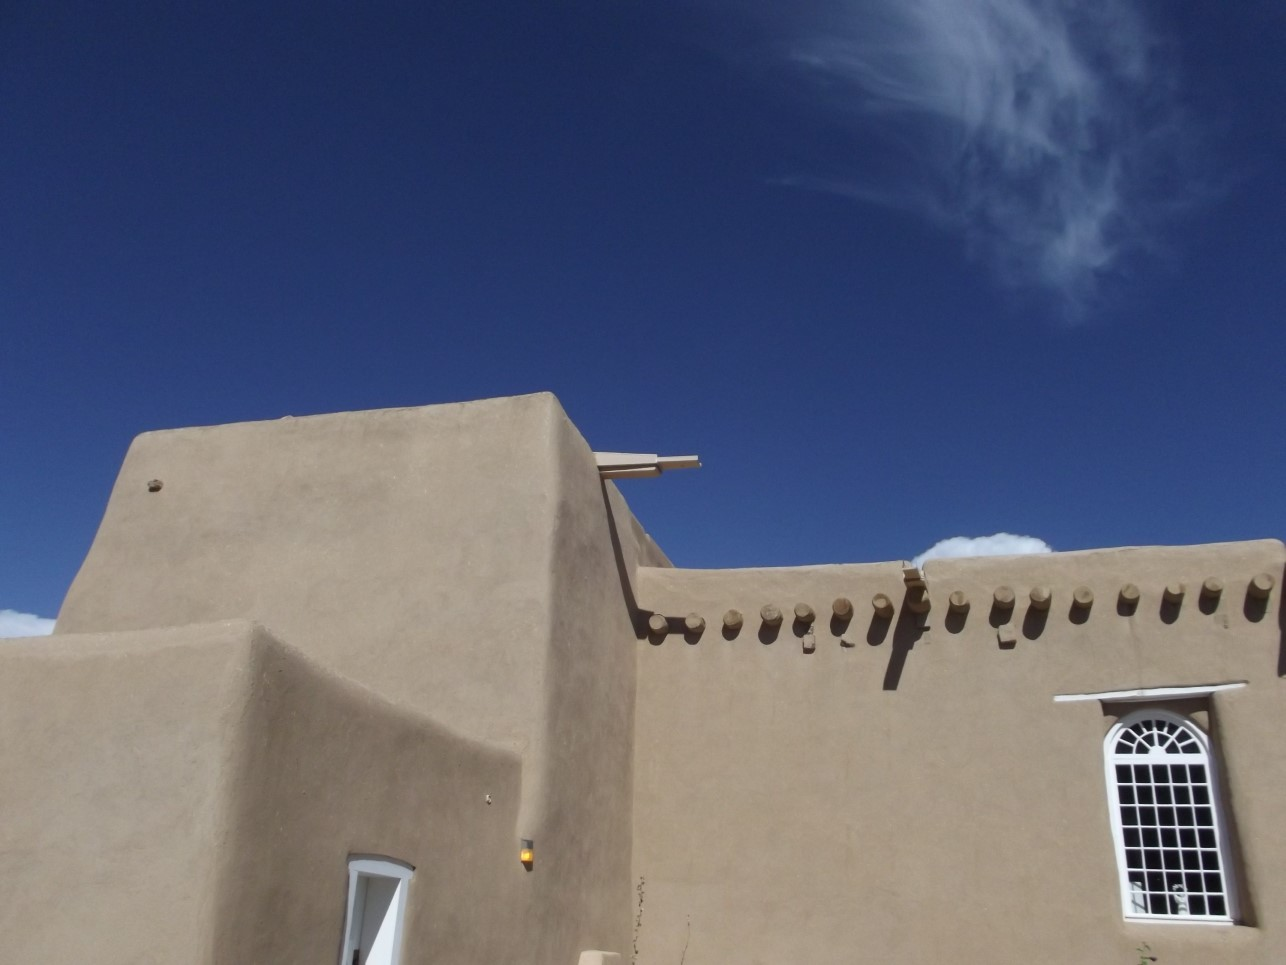 Adobe building with white window frames